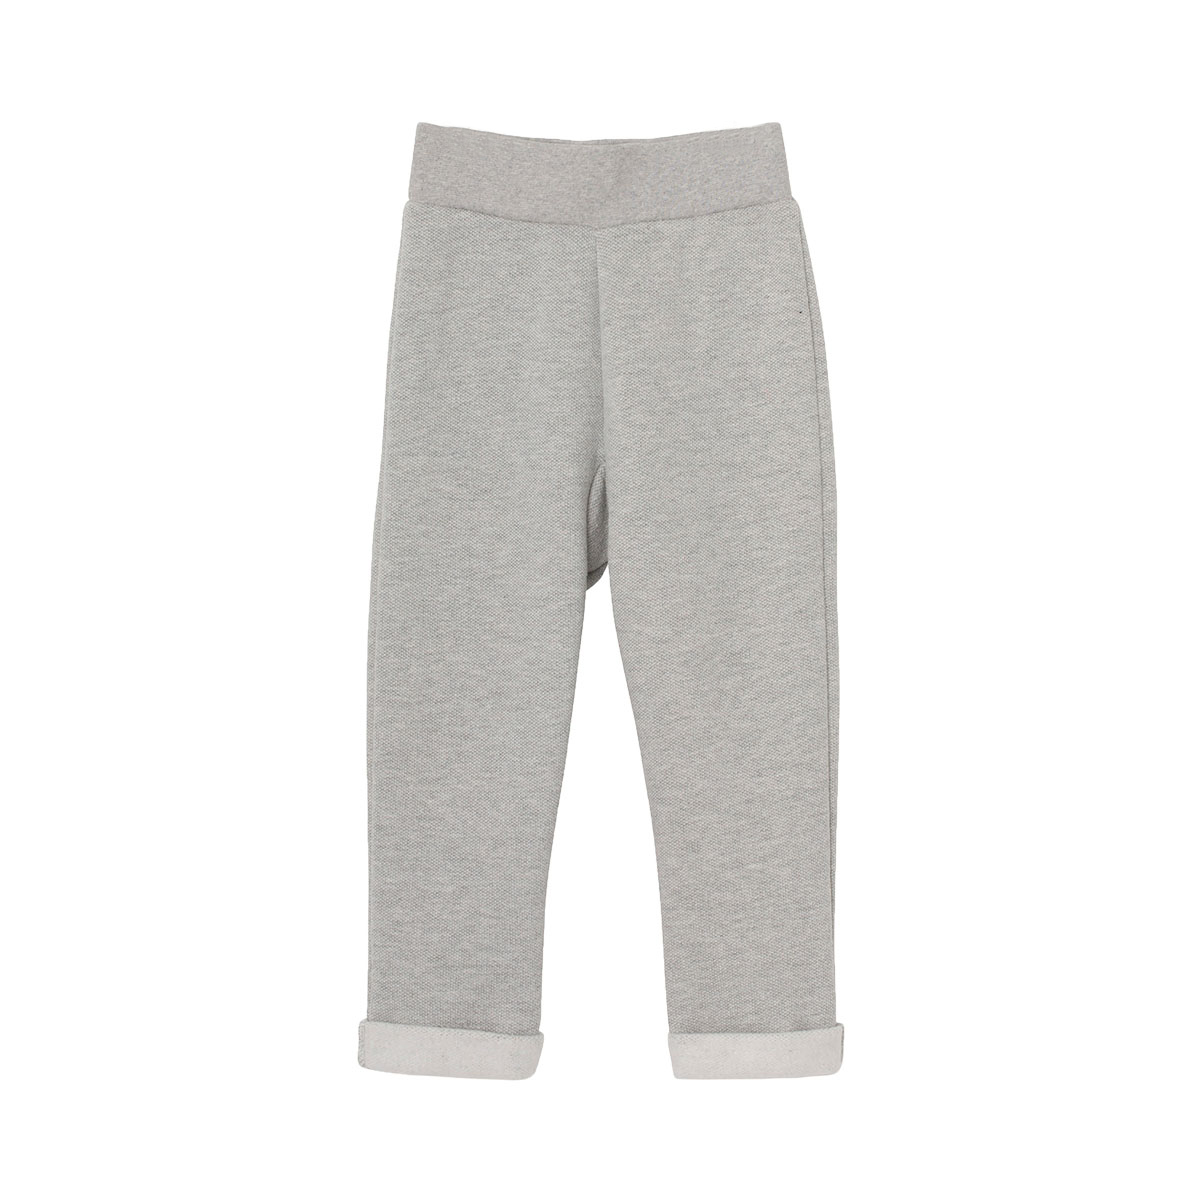 MiniATure Manuel Pant in light grey